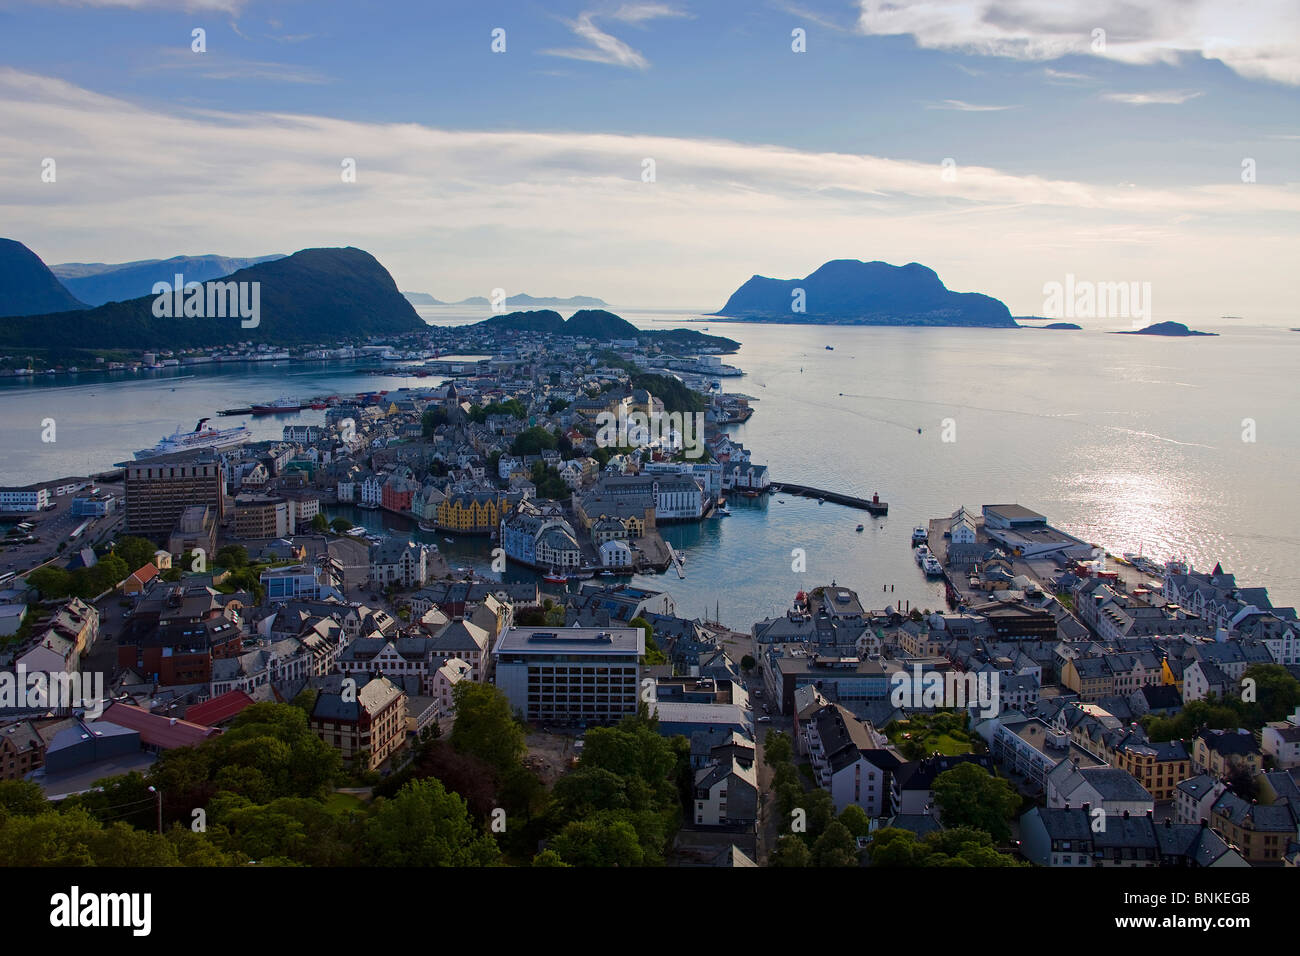 Norway Scandinavia ale sound town city houses homes harbour port Ueberischt midnight sun sea travel holidays vacation - Stock Image